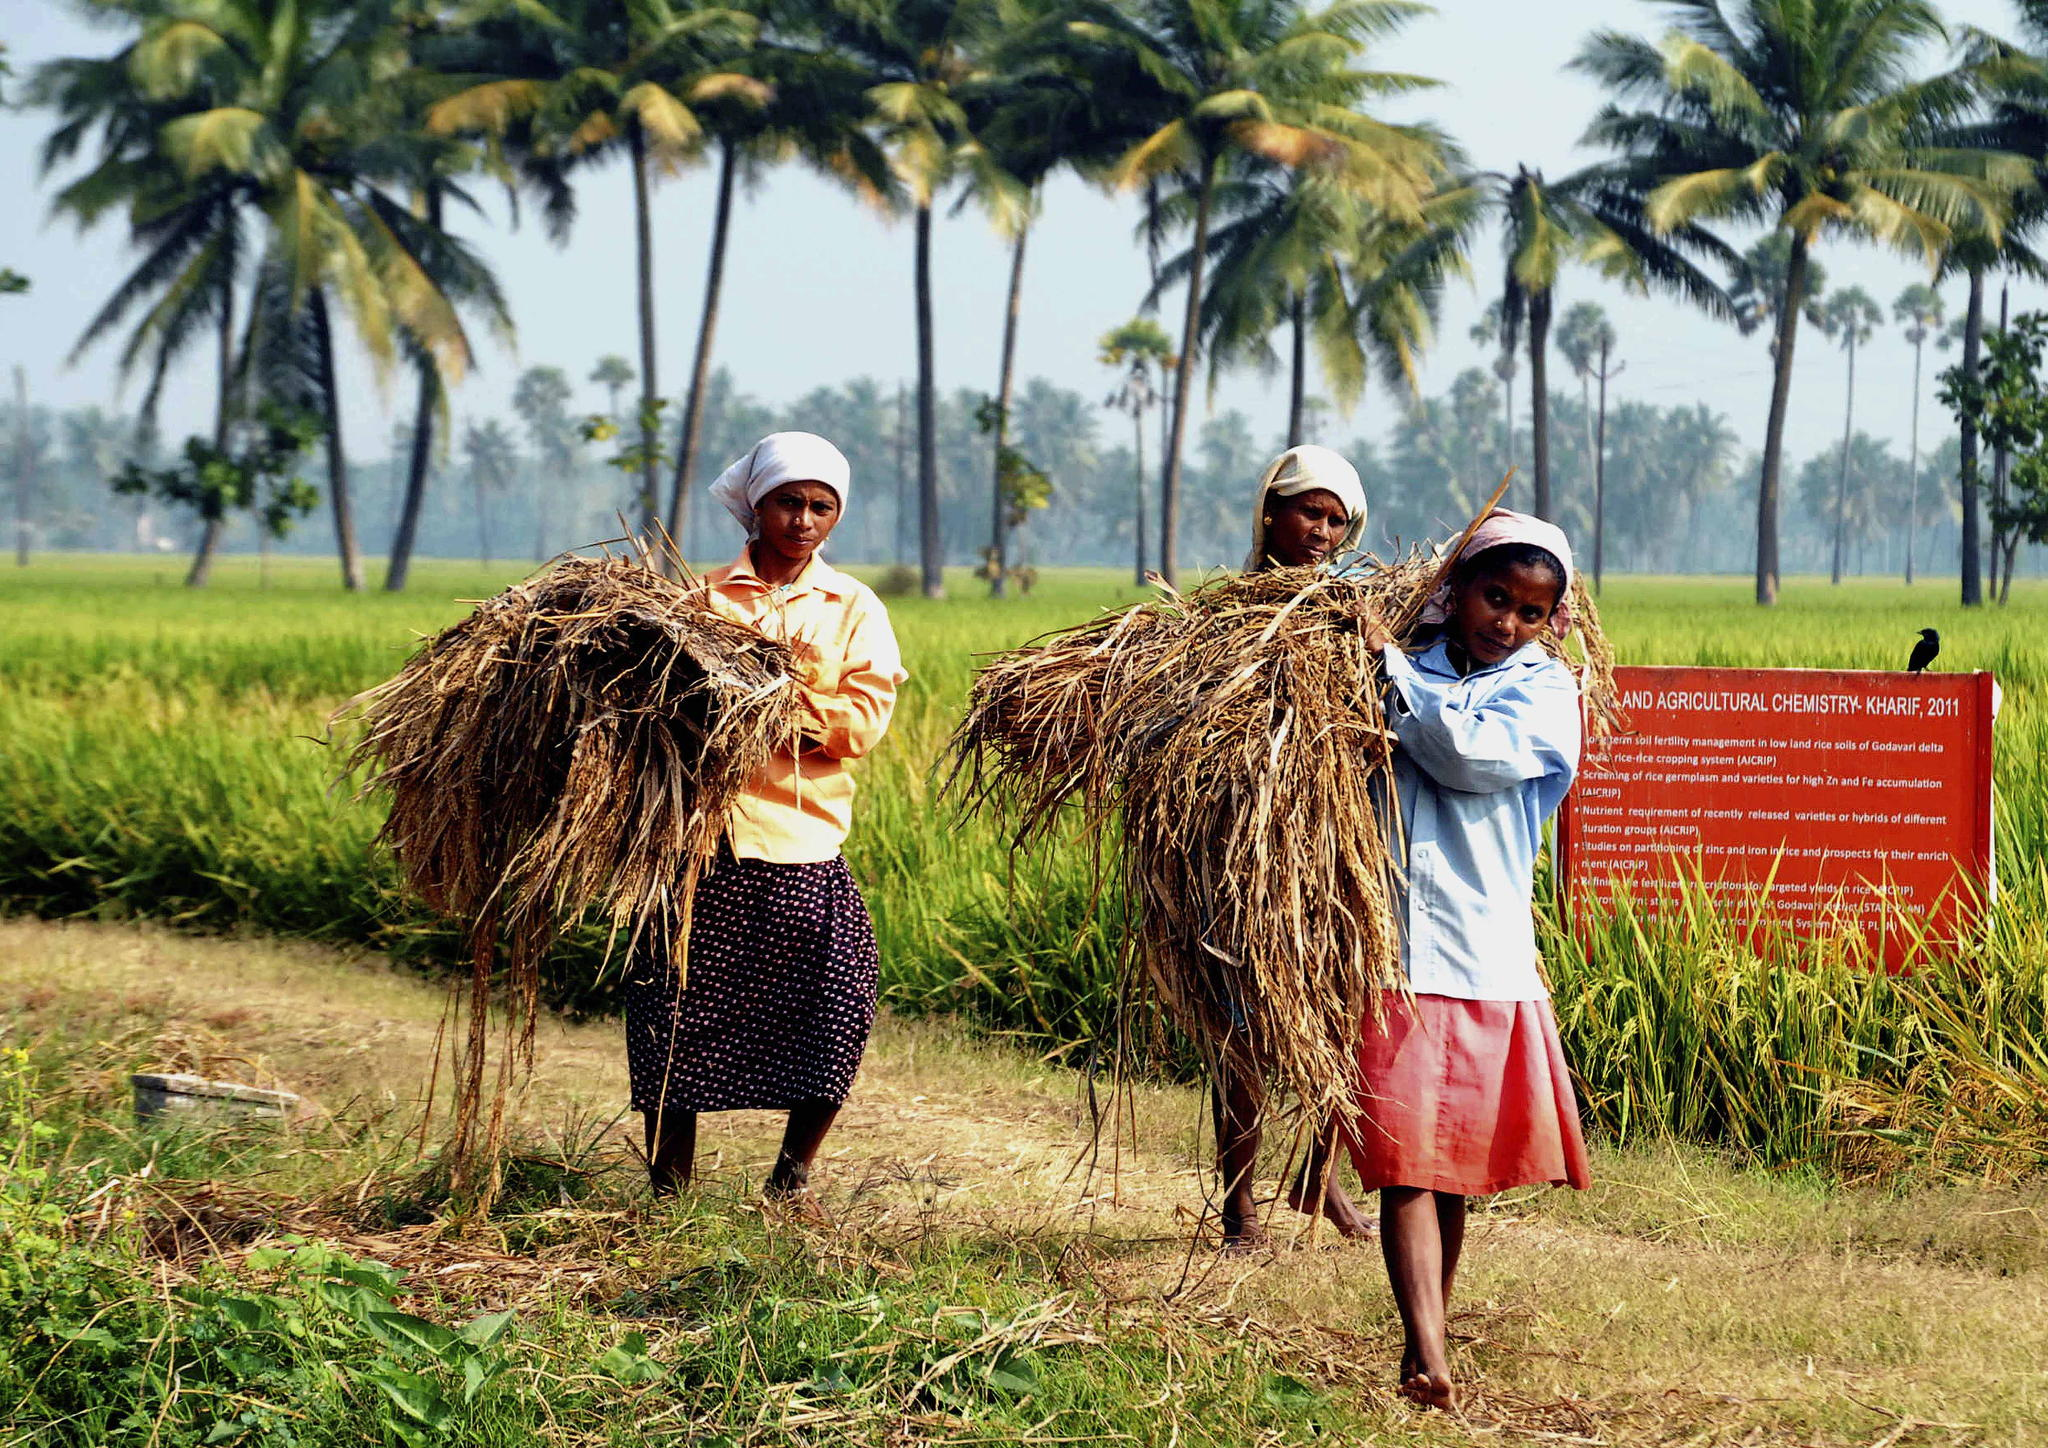 agricultural women by Samuel Johnson on 500px